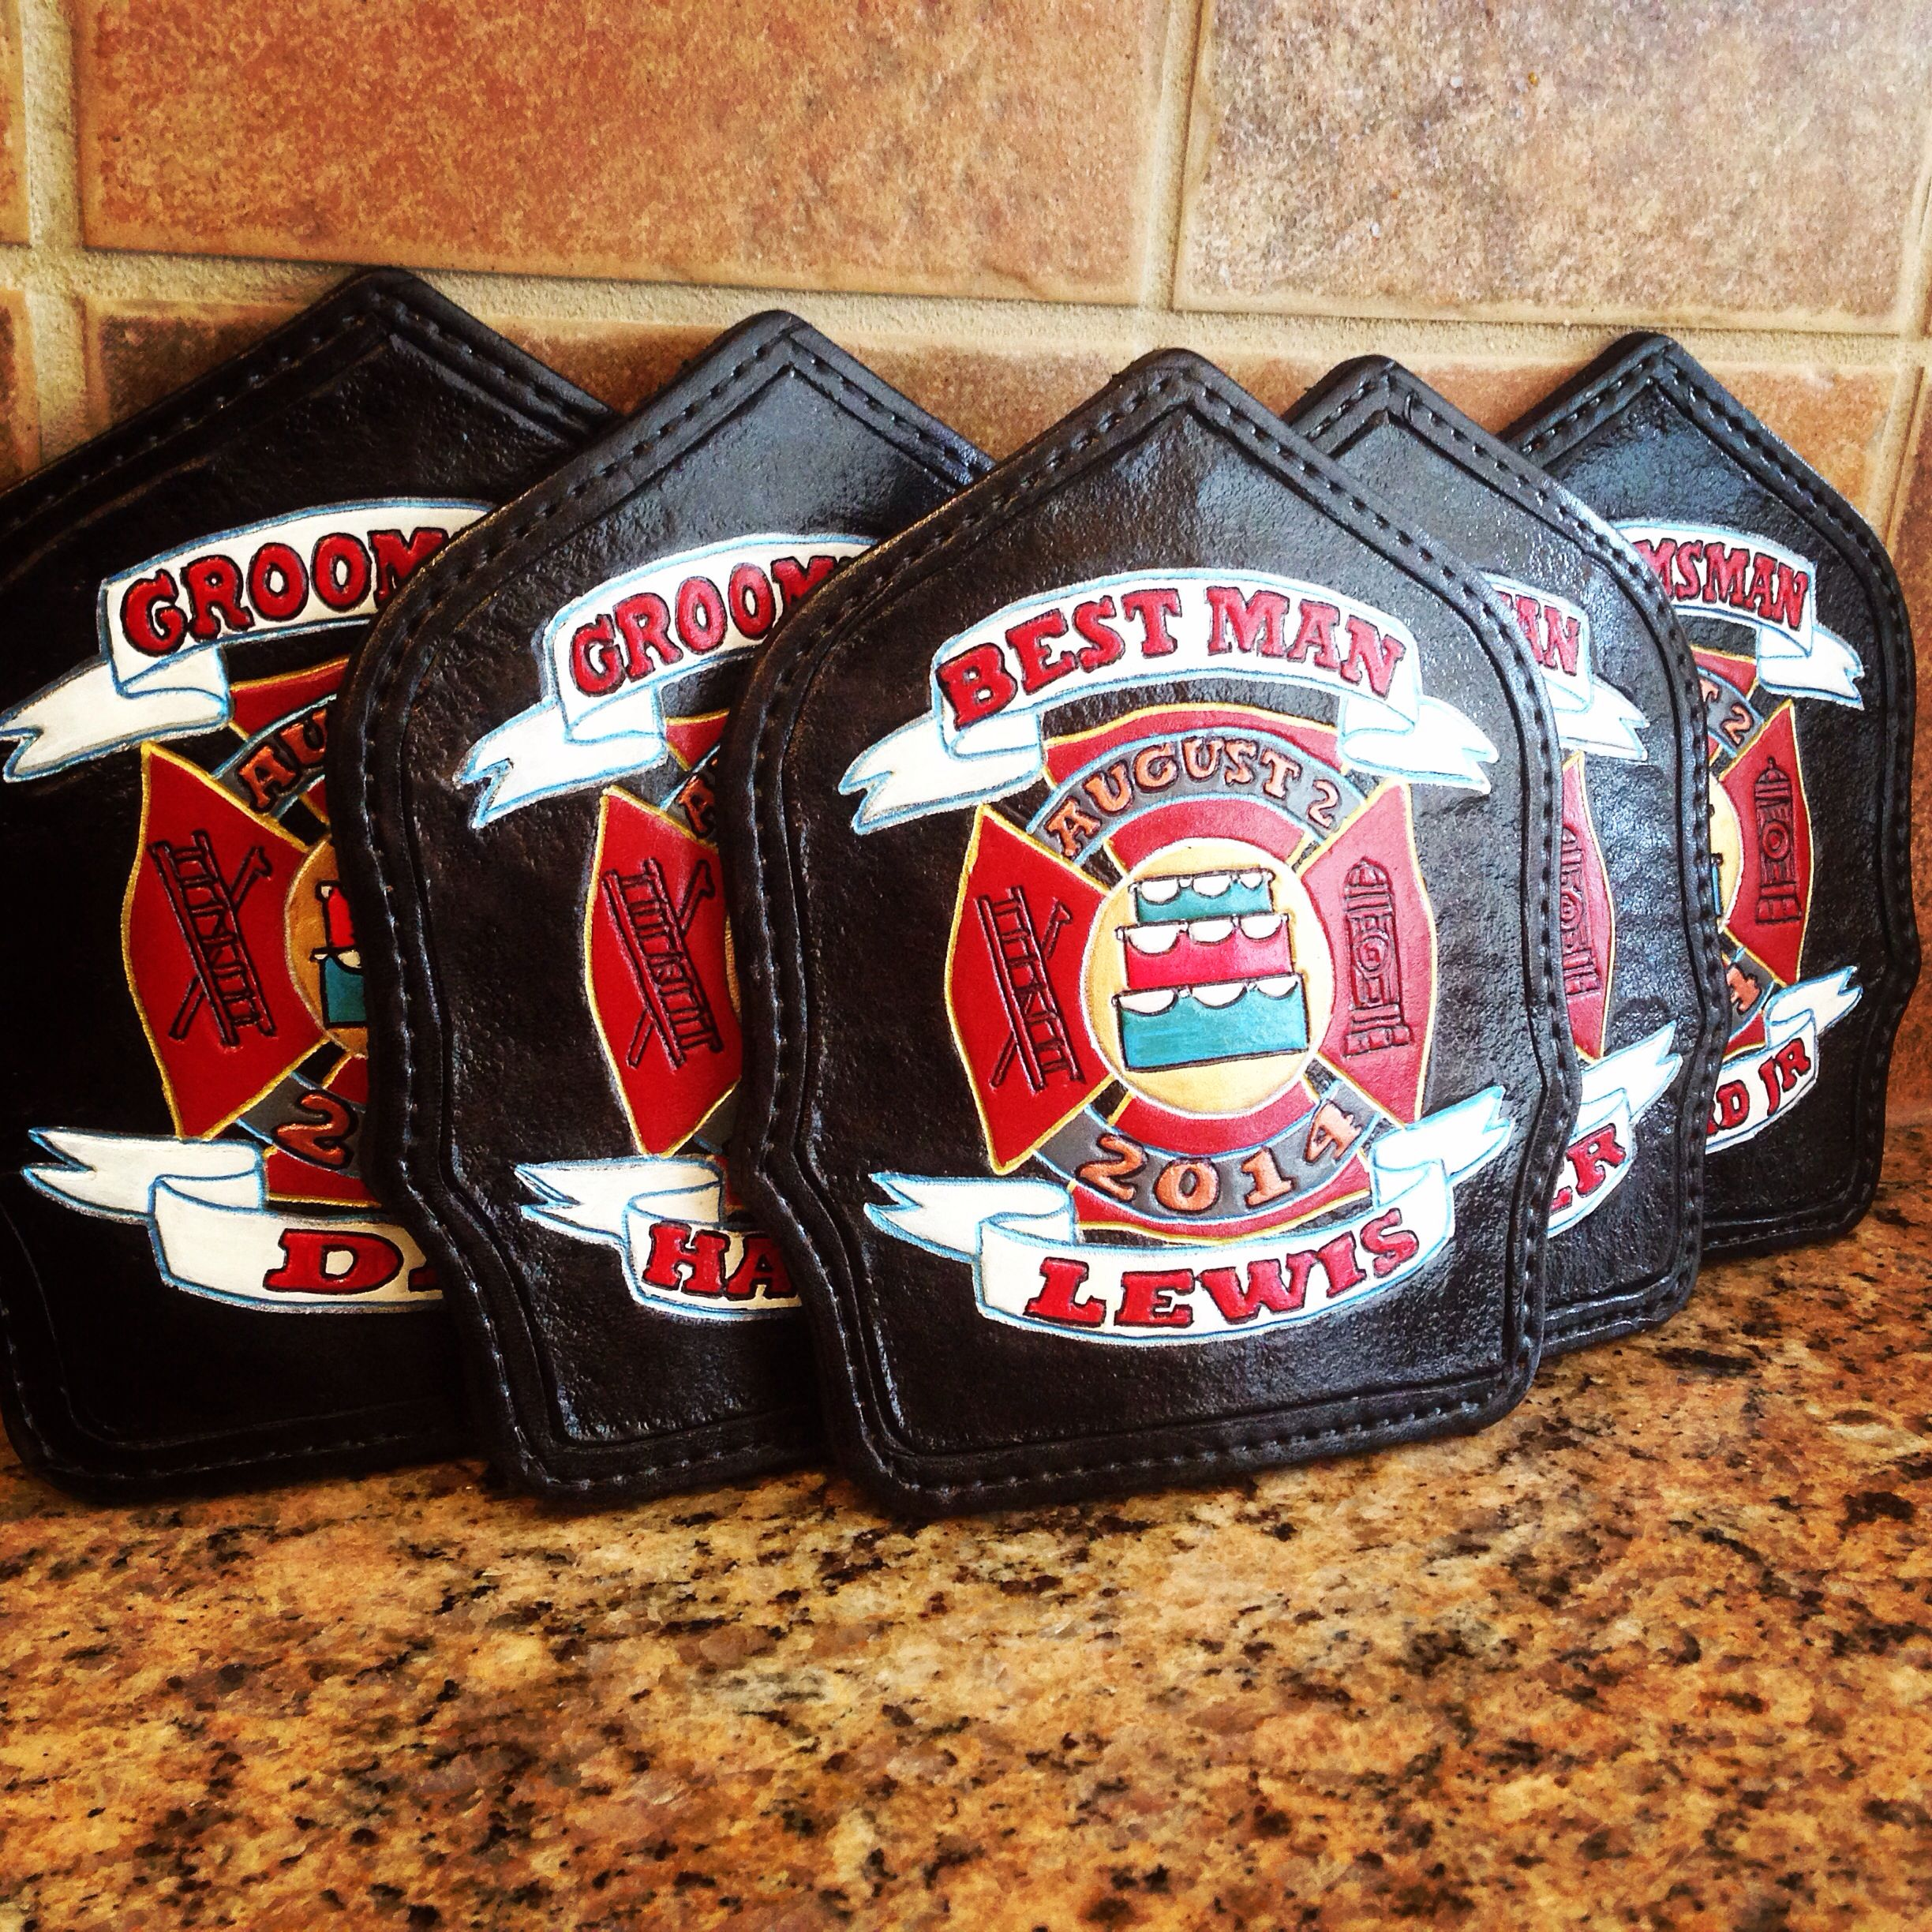 Firefighter Wedding Themes Ideas: Custom Shields For A Wedding